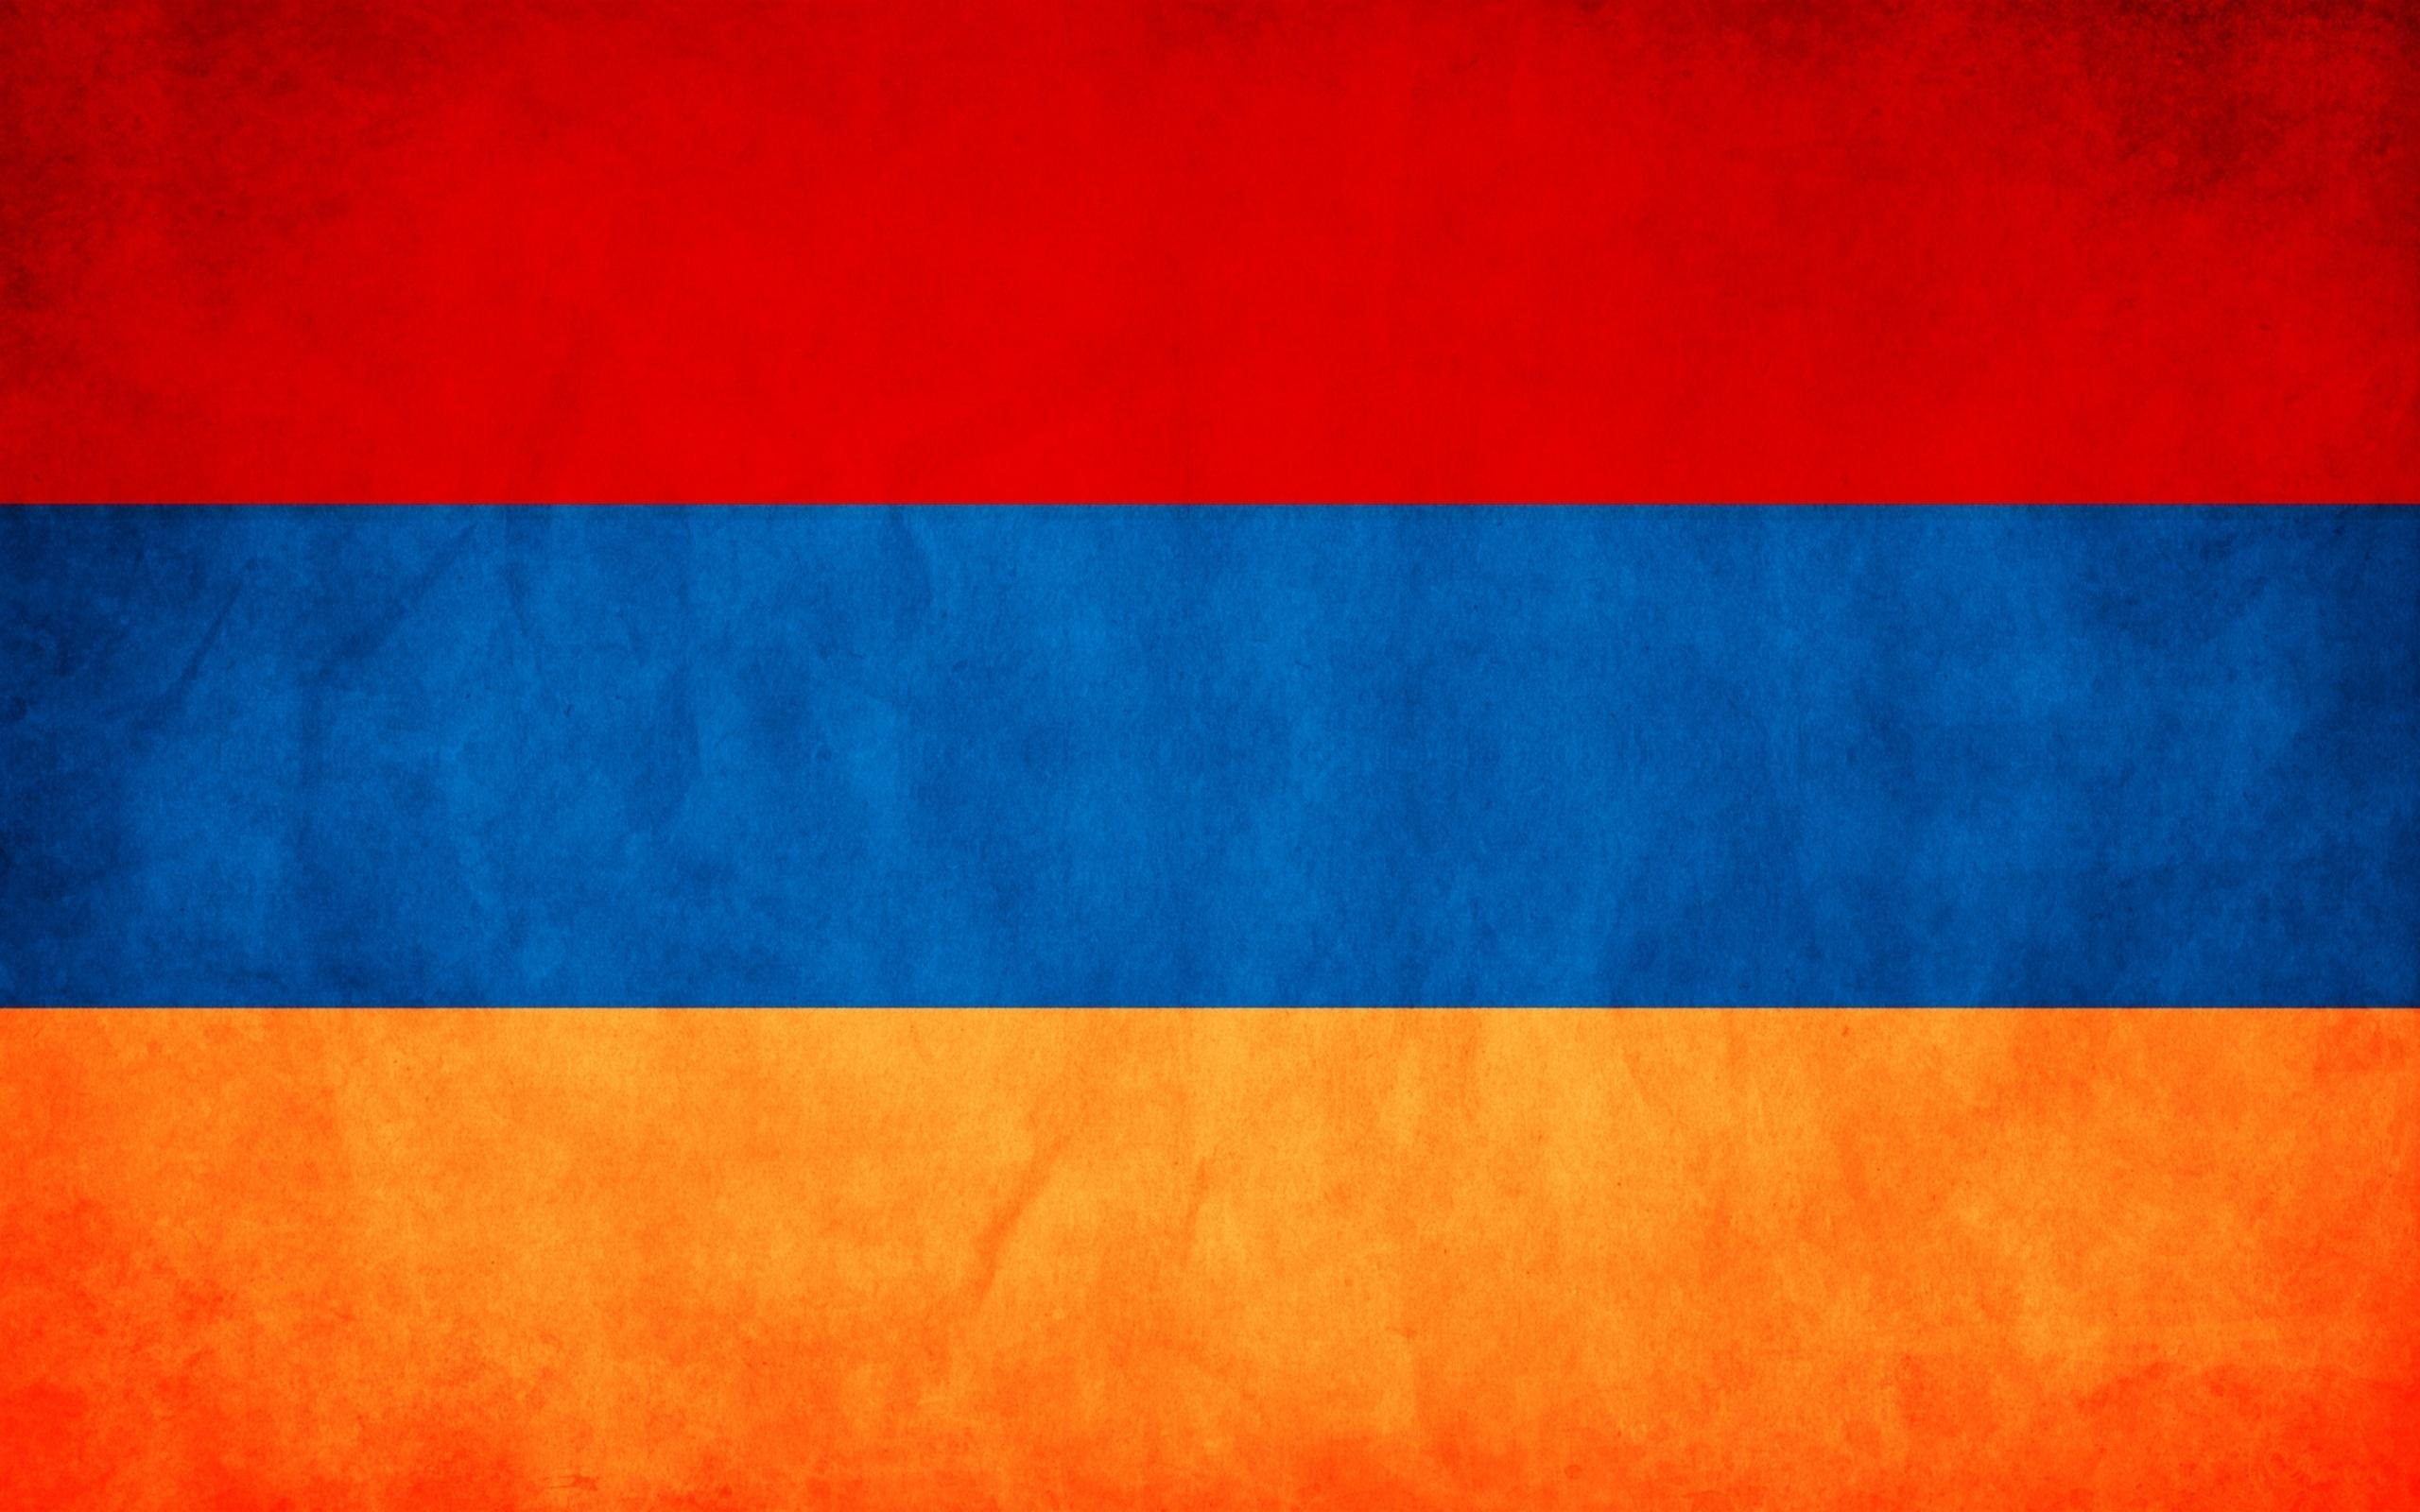 Wallpaper Armenia flag 2560x1600 HD Picture Image 2560x1600